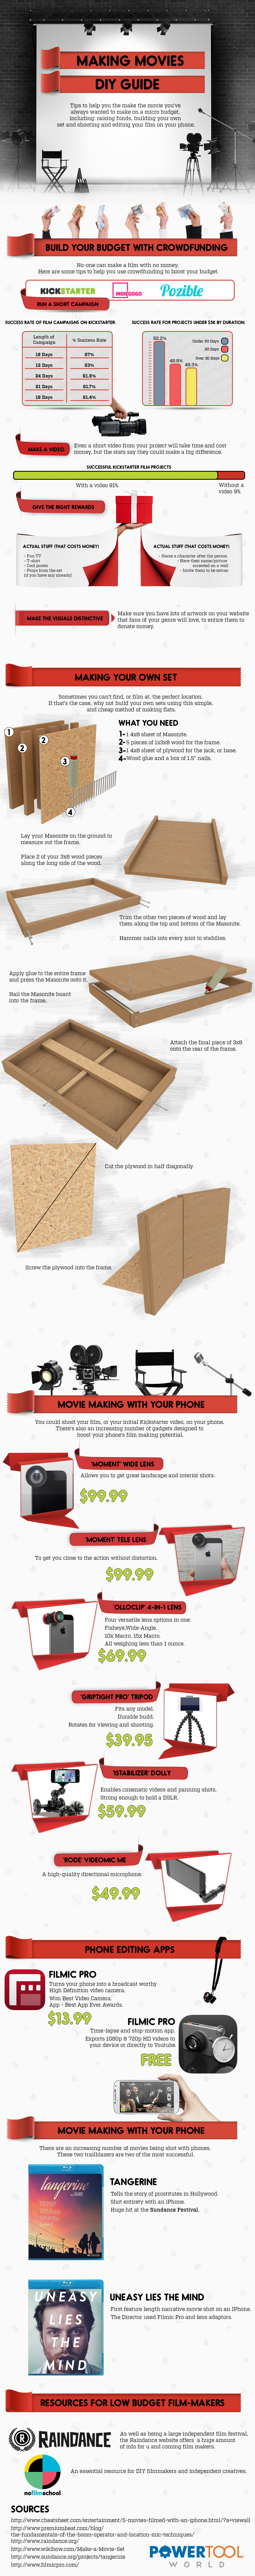 Making Movies - DIY Guide